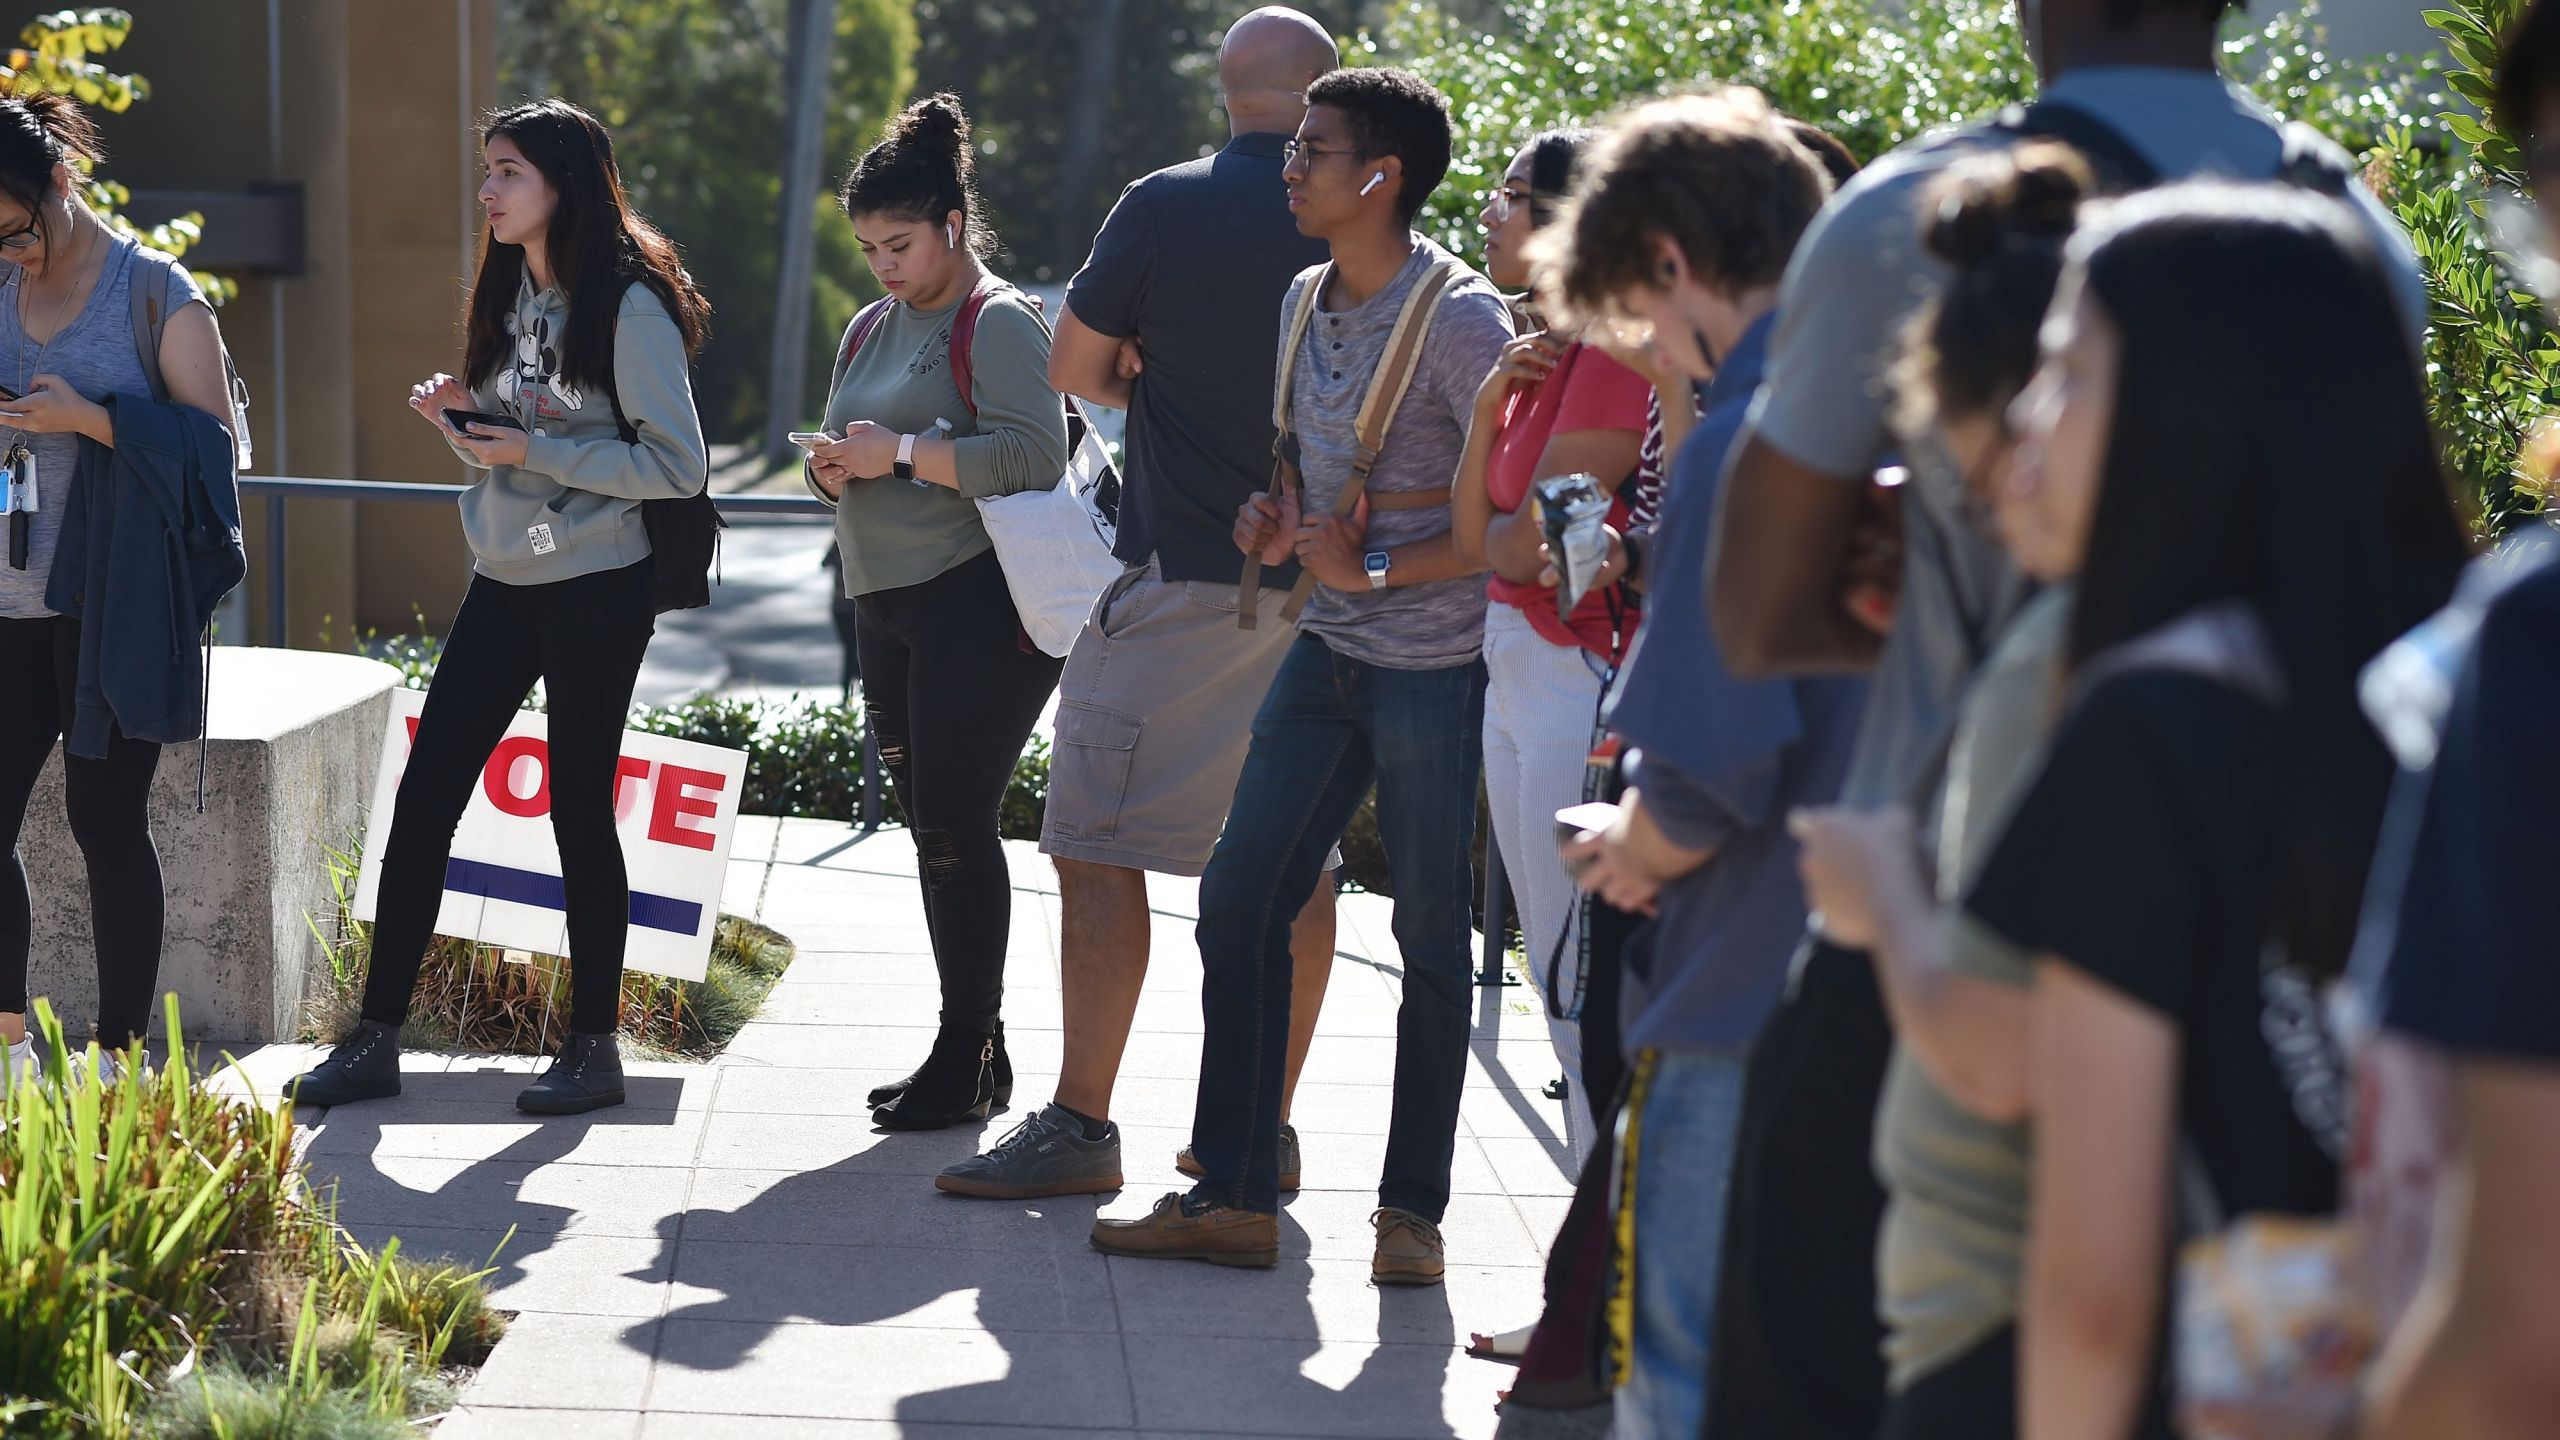 Students wait in line to vote at the University of California, Irvine, on November 6, 2018. Photo: Robyn Beck/AFP.